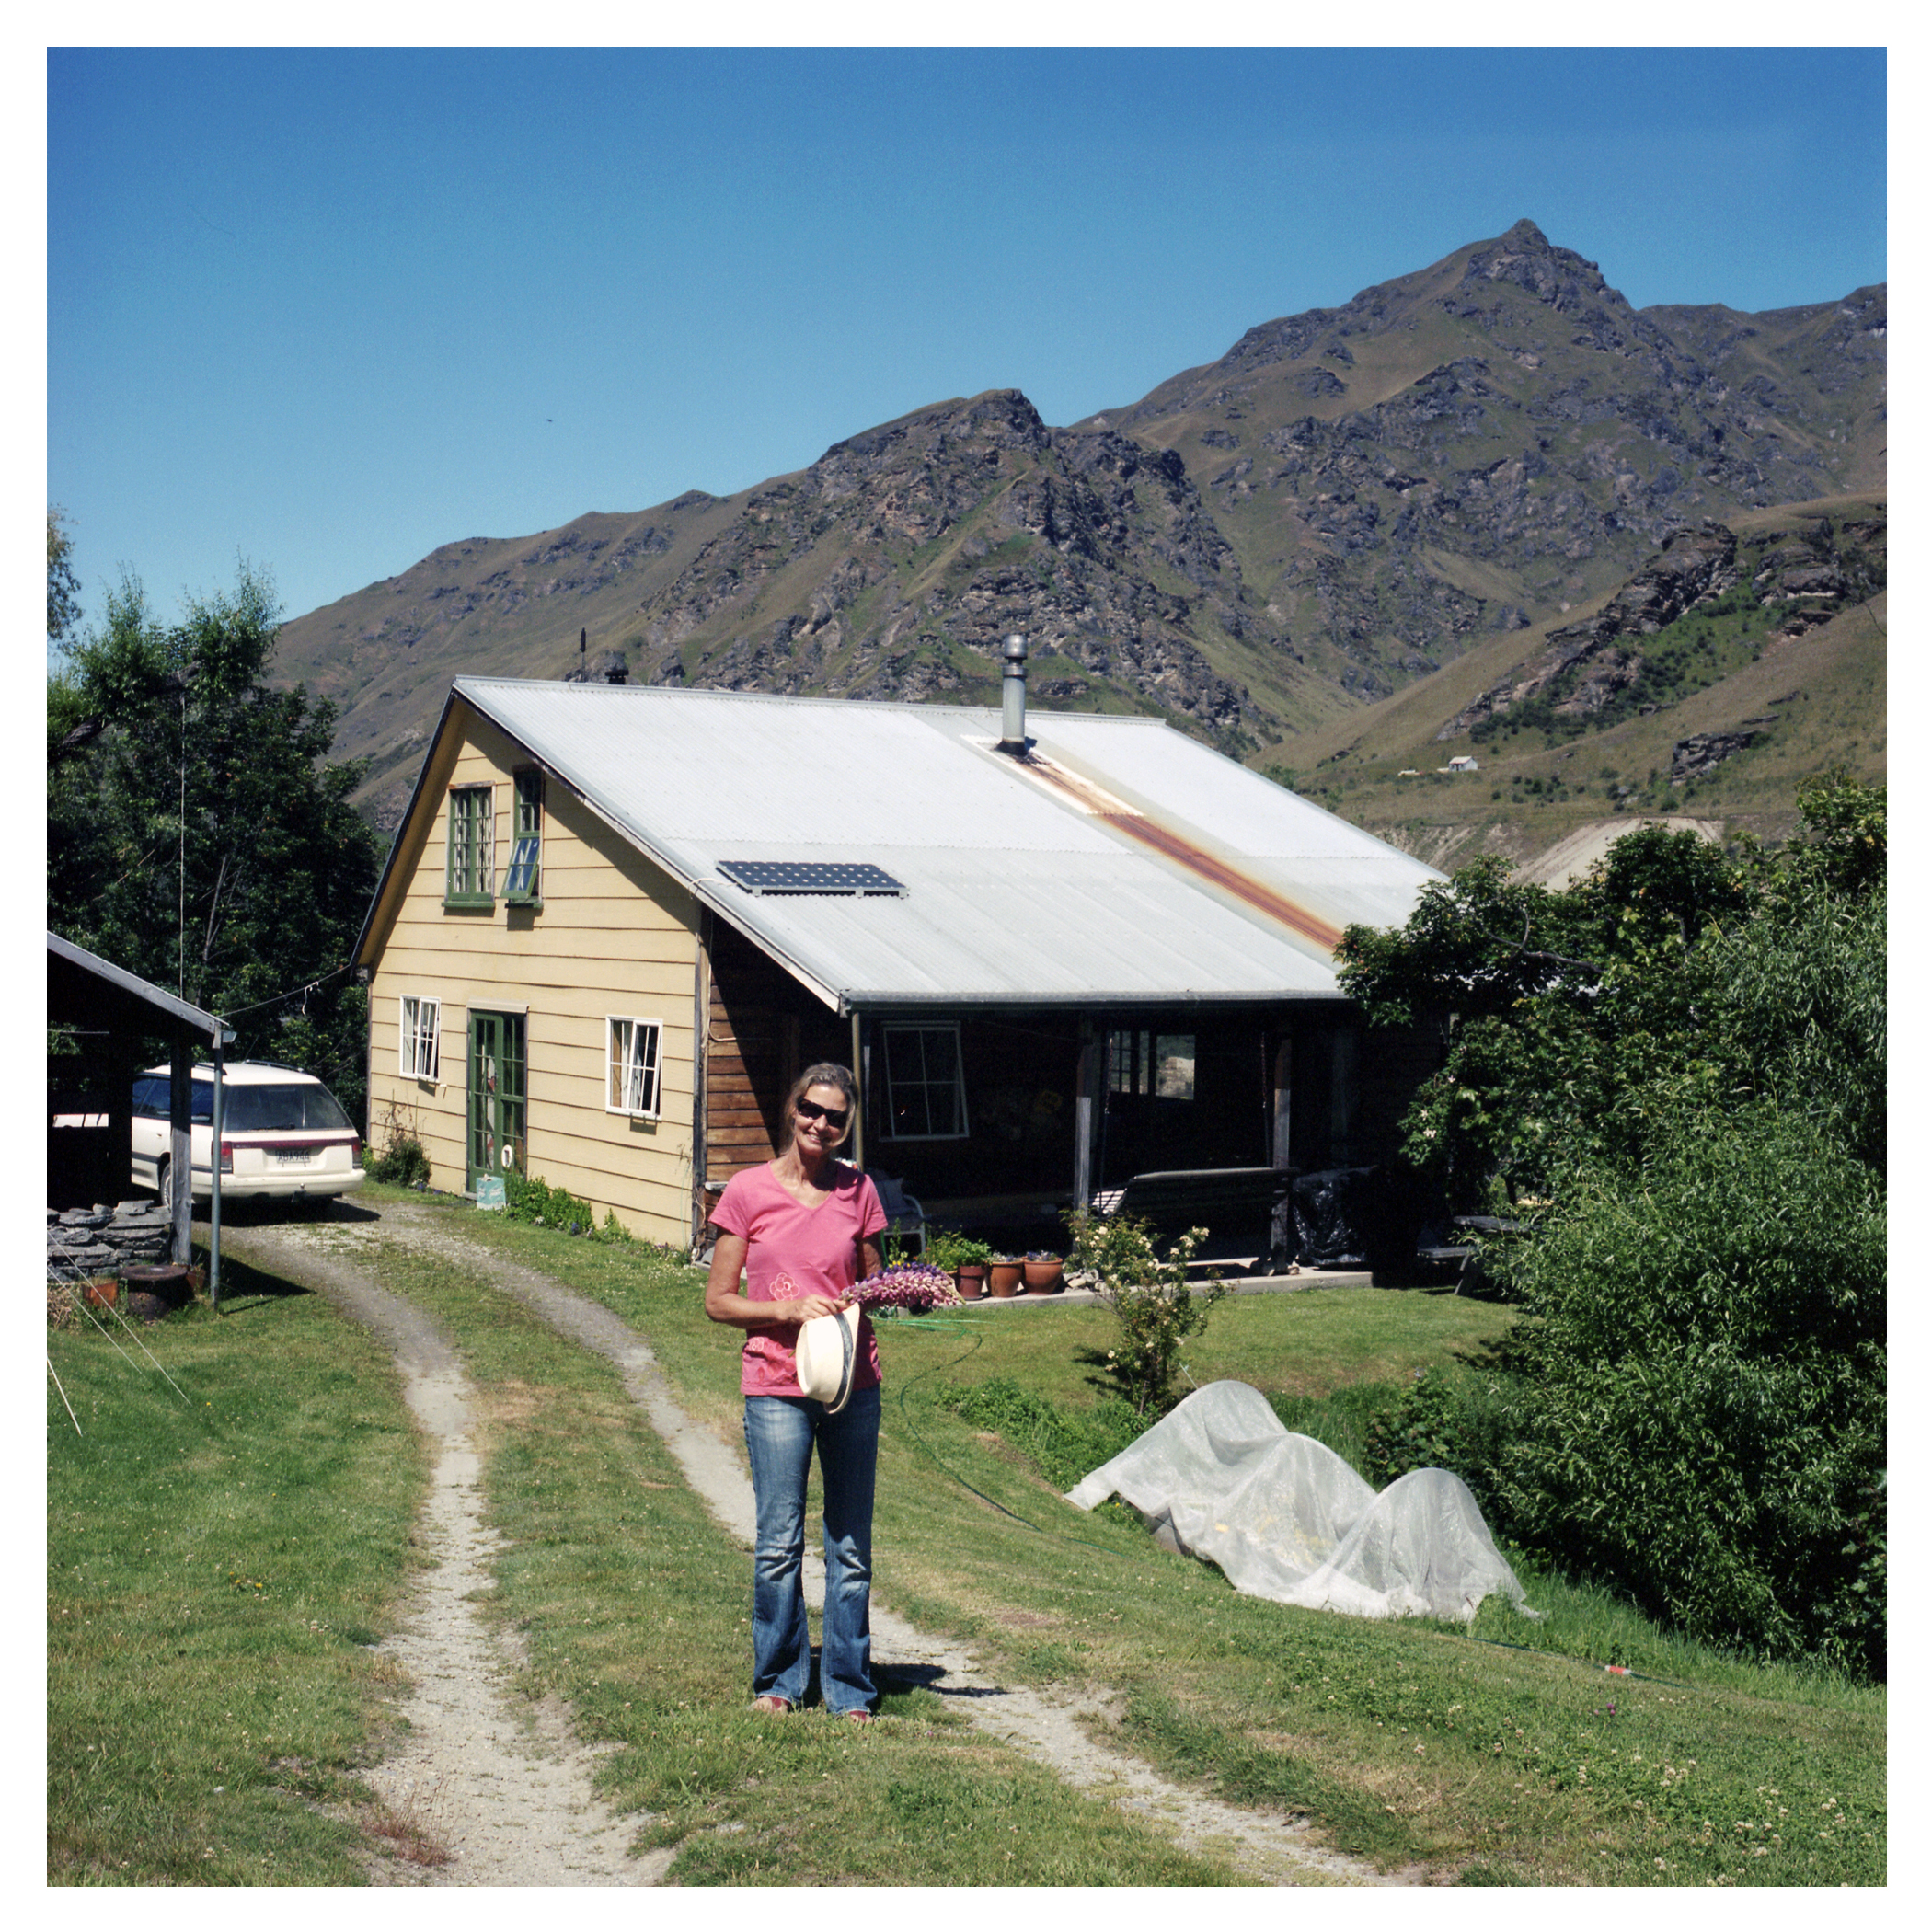 Living in one of the few houses on Skippers Road is Jayne Schieb, our host & guide to the canyon.  Jayne has lived in the canyon for over 20 years and knows it inside and out.  To escape the harsh winters in the canyon, Jane heads up her small business whisking eager Kiwi's off to the Greek islands to enjoy a second summer.